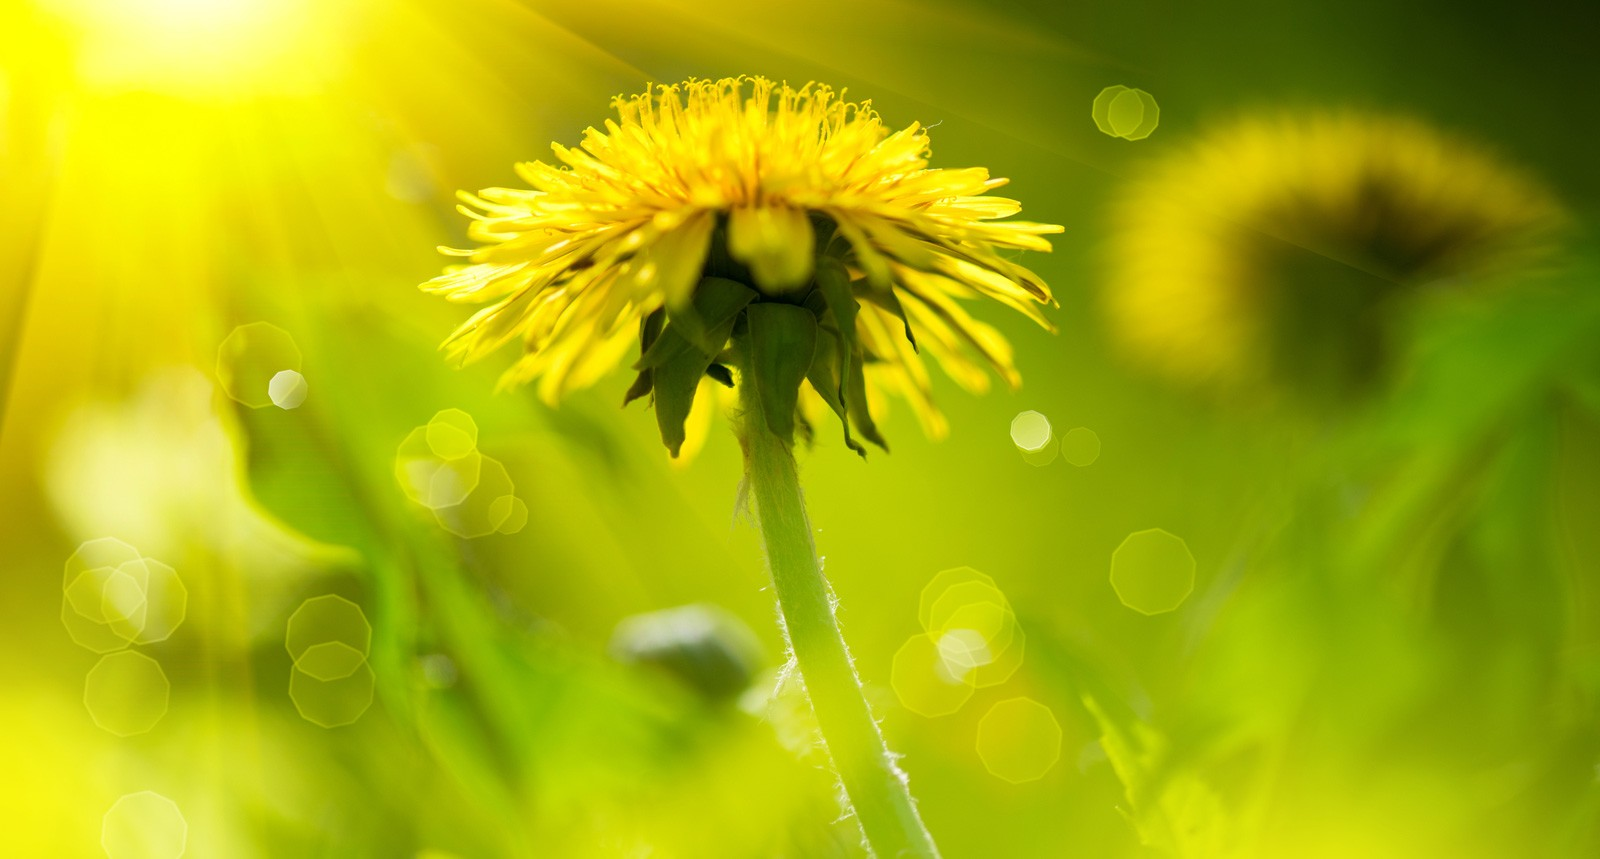 Sassy Symbolic Dandelion Meanings On Whats Your Sign